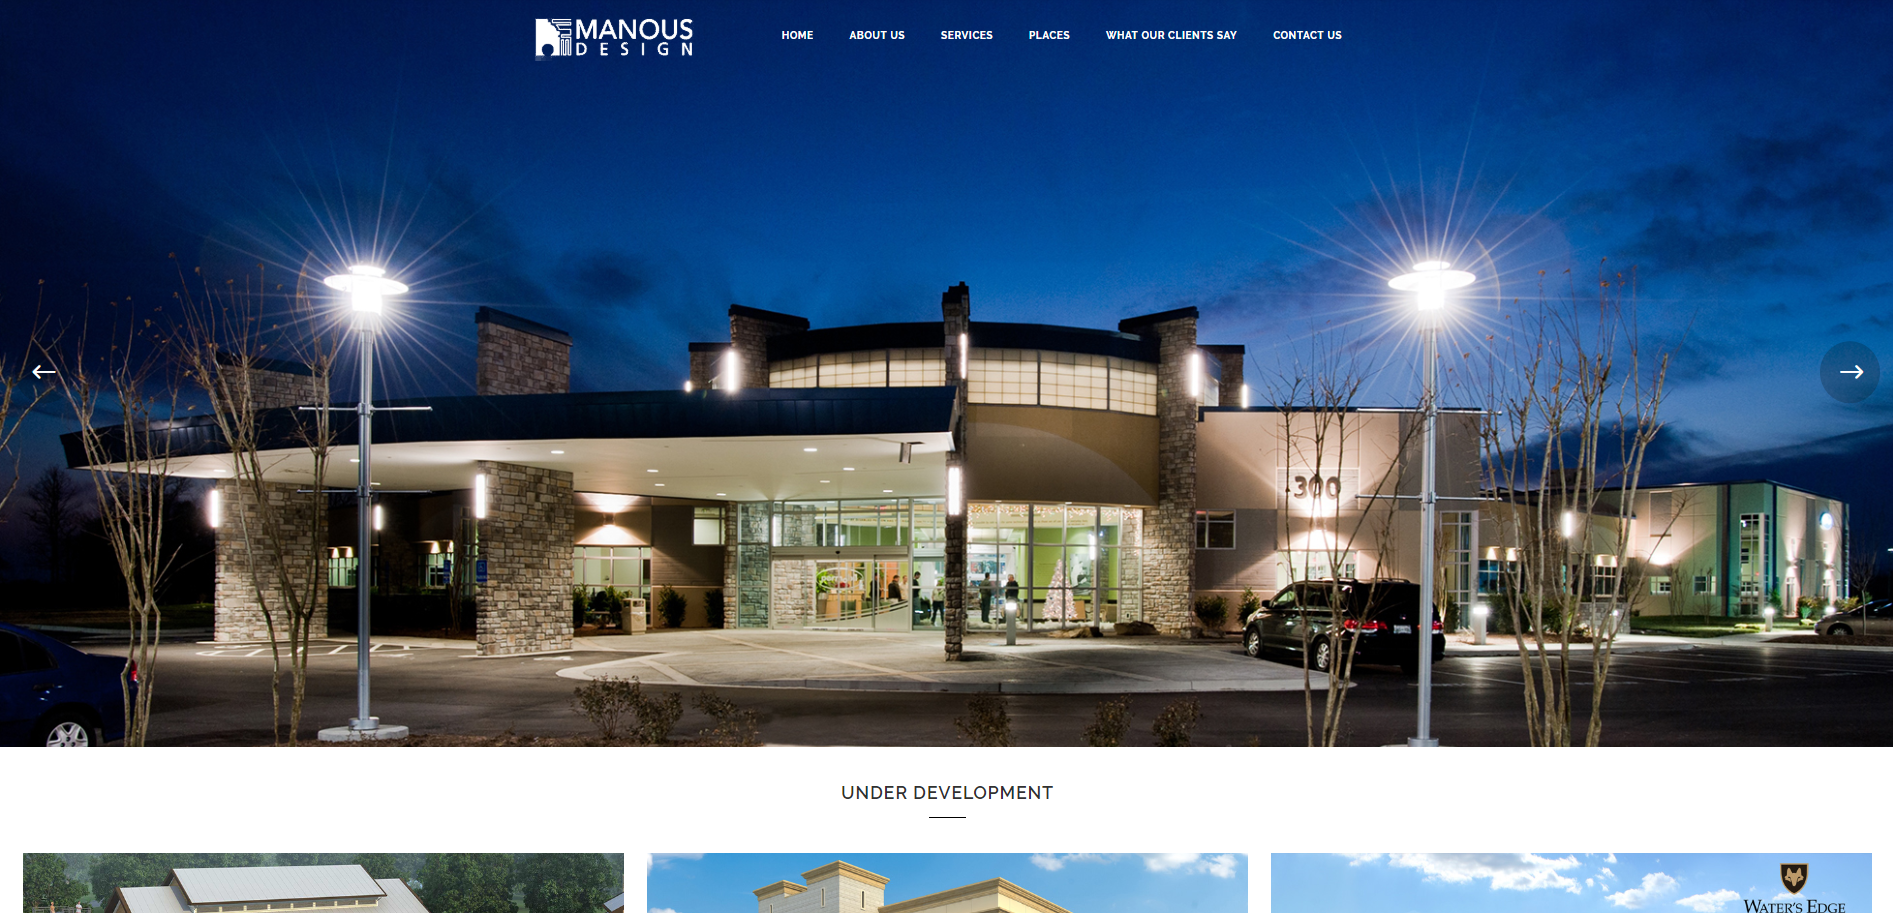 Manous Design Architecture Firm Home Page